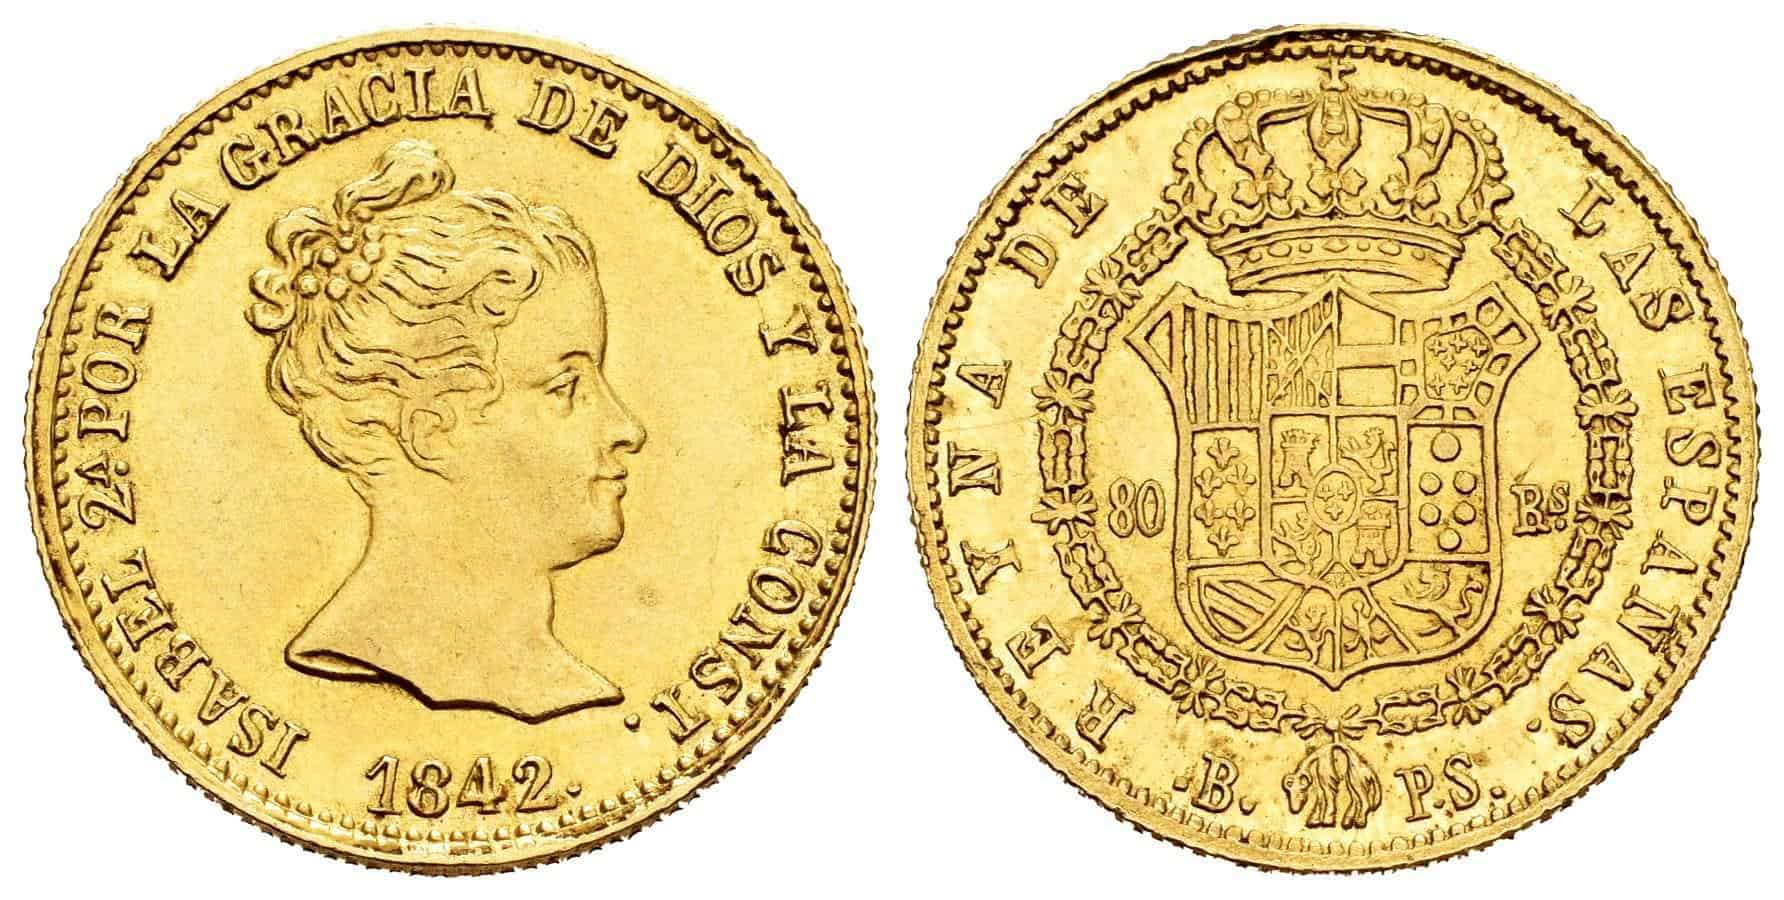 80 reales 1842, Barcelona P.S.